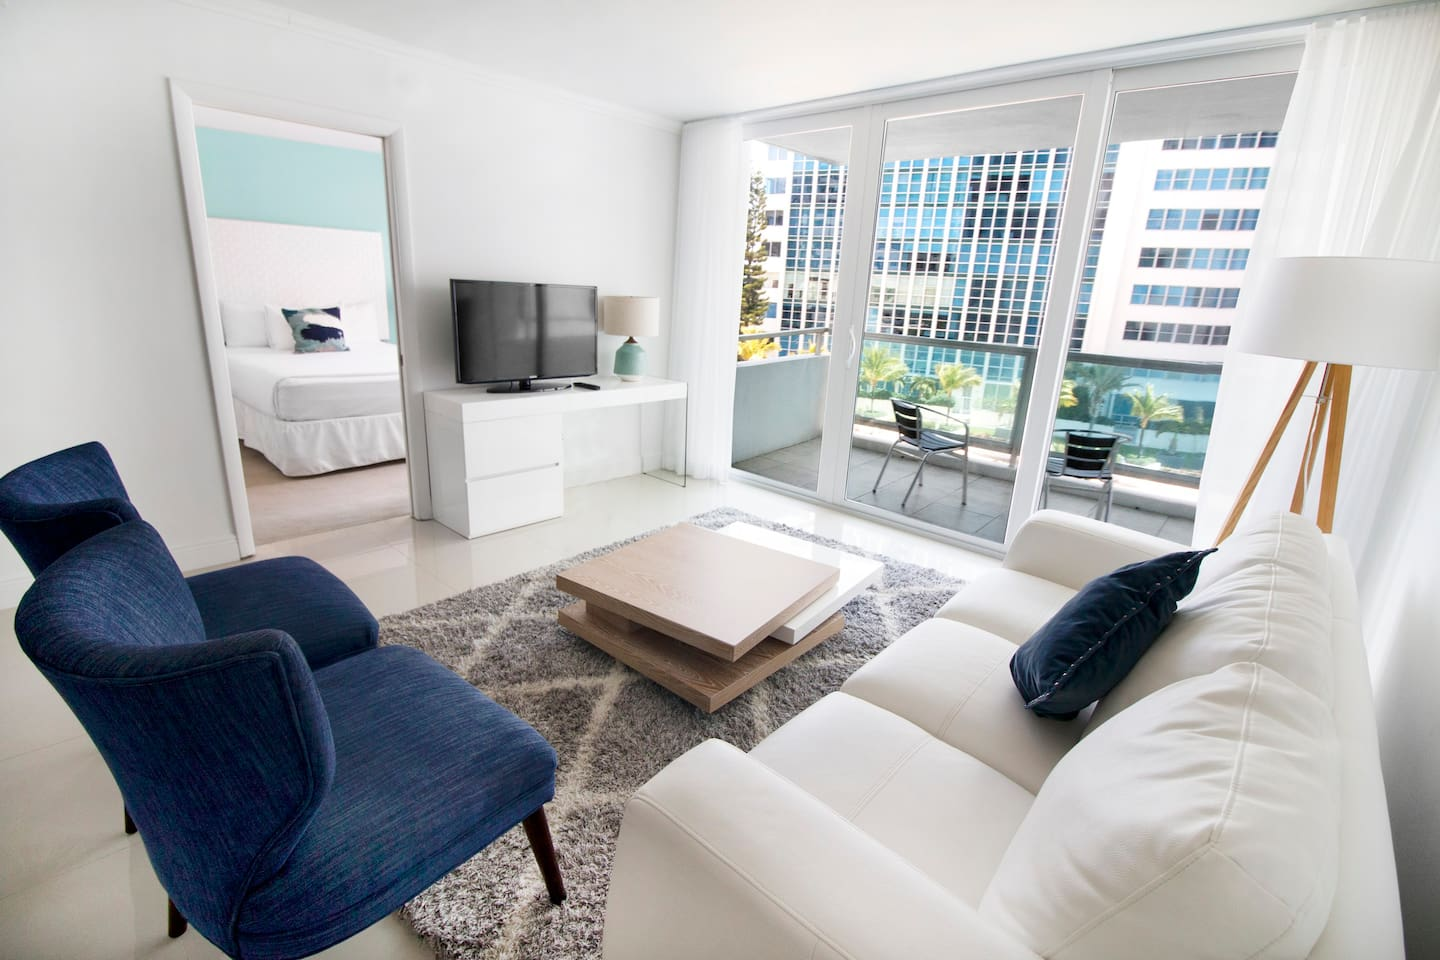 Bedroom Apartments For Rent In South Beach Miami